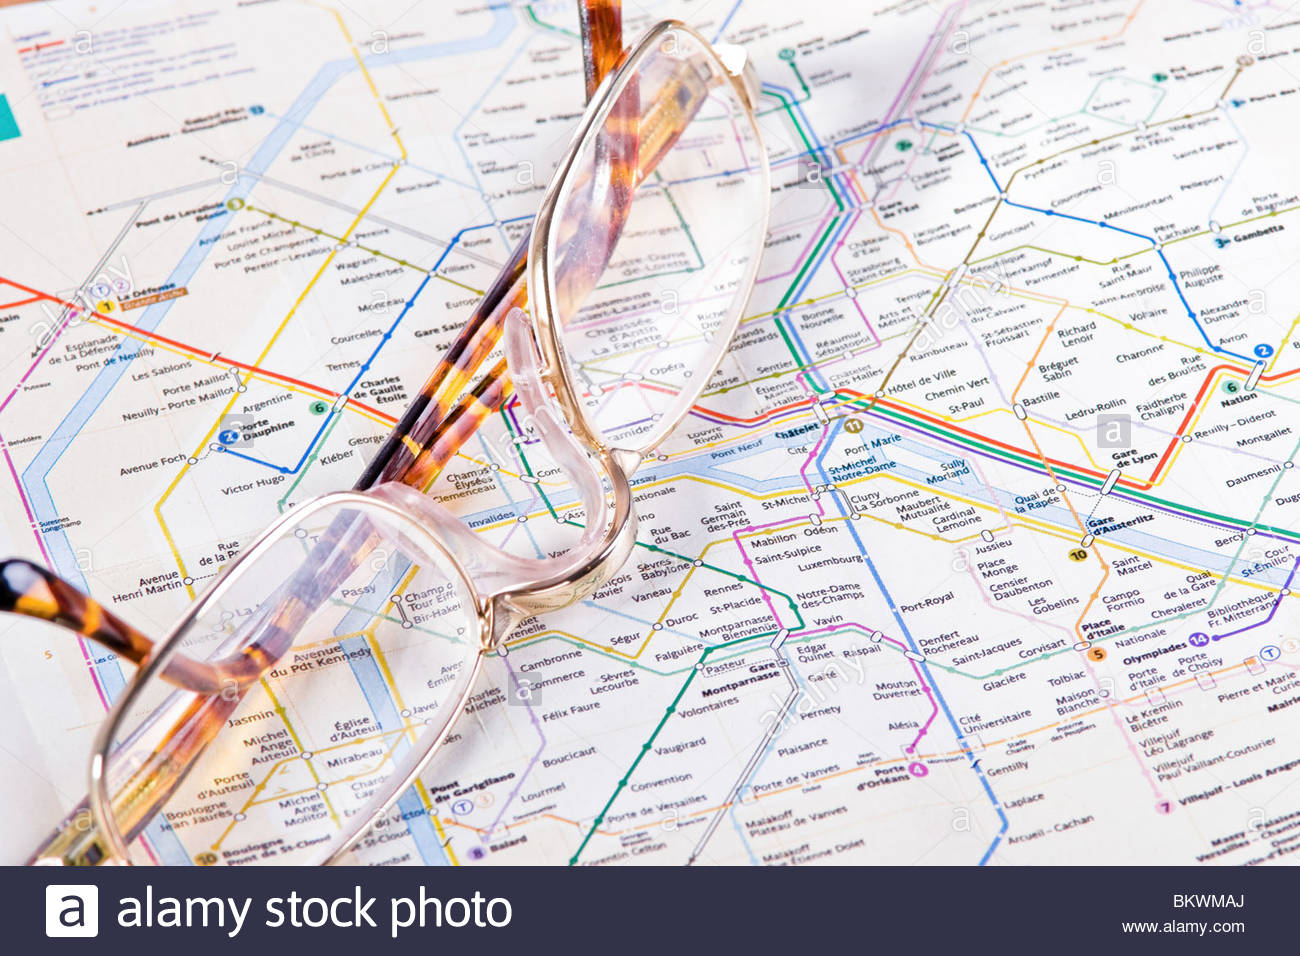 paris subway map stock image